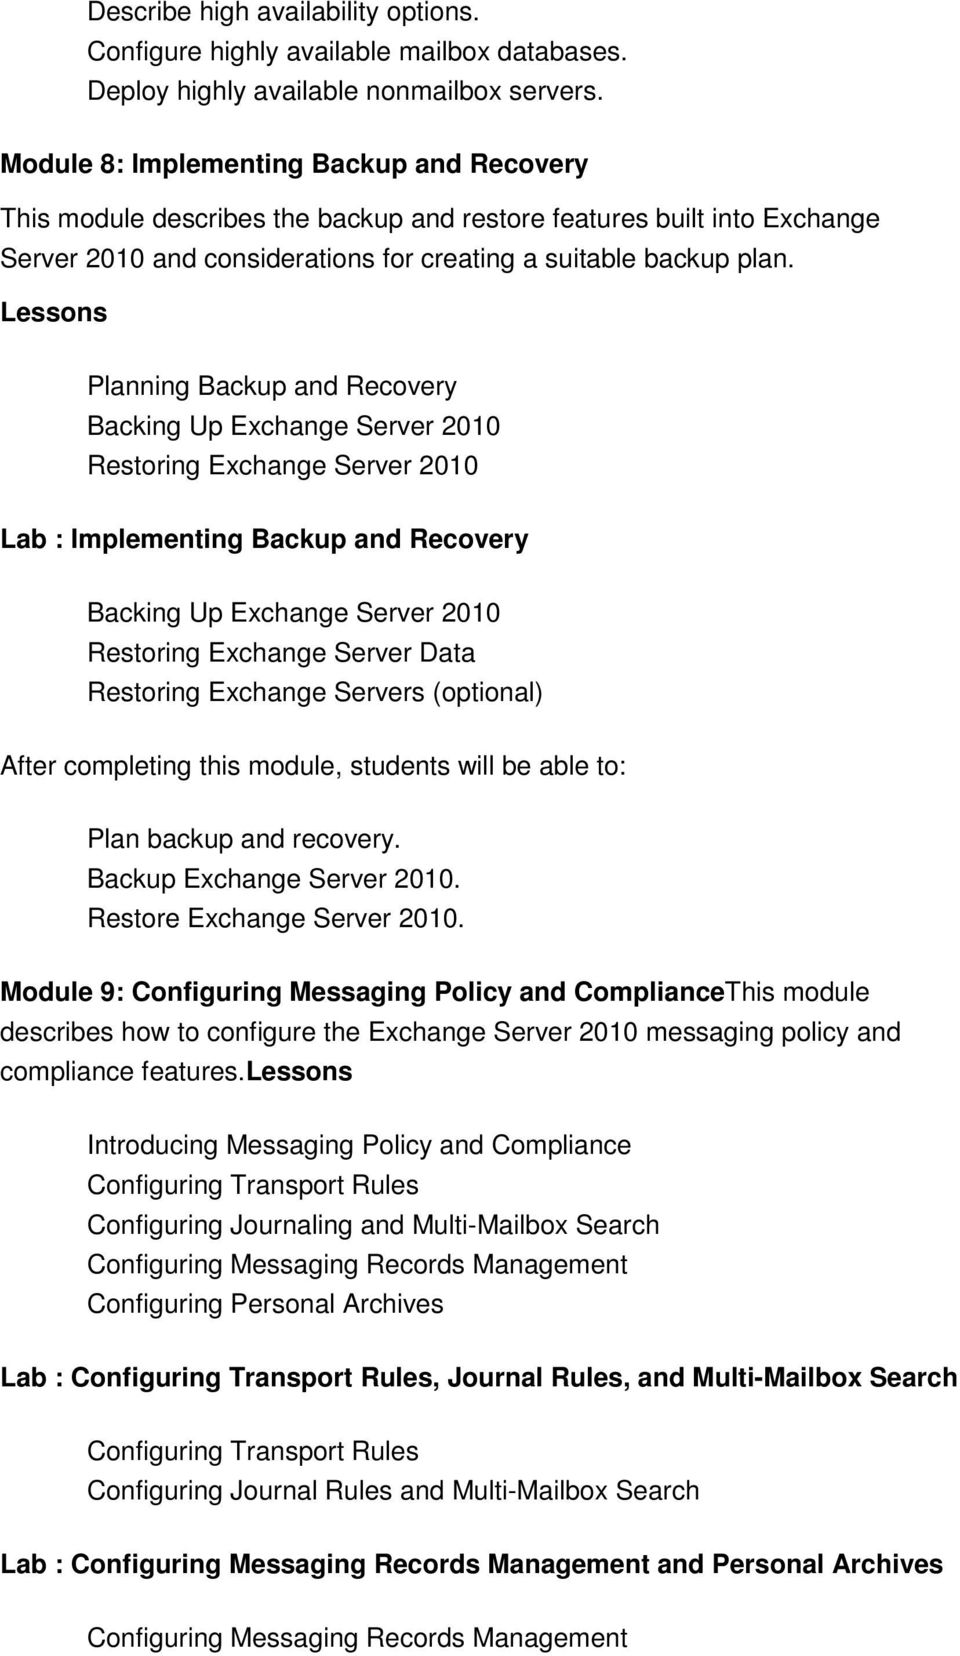 Lessons Planning Backup and Recovery Backing Up Exchange Server 2010 Restoring Exchange Server 2010 Lab : Implementing Backup and Recovery Backing Up Exchange Server 2010 Restoring Exchange Server